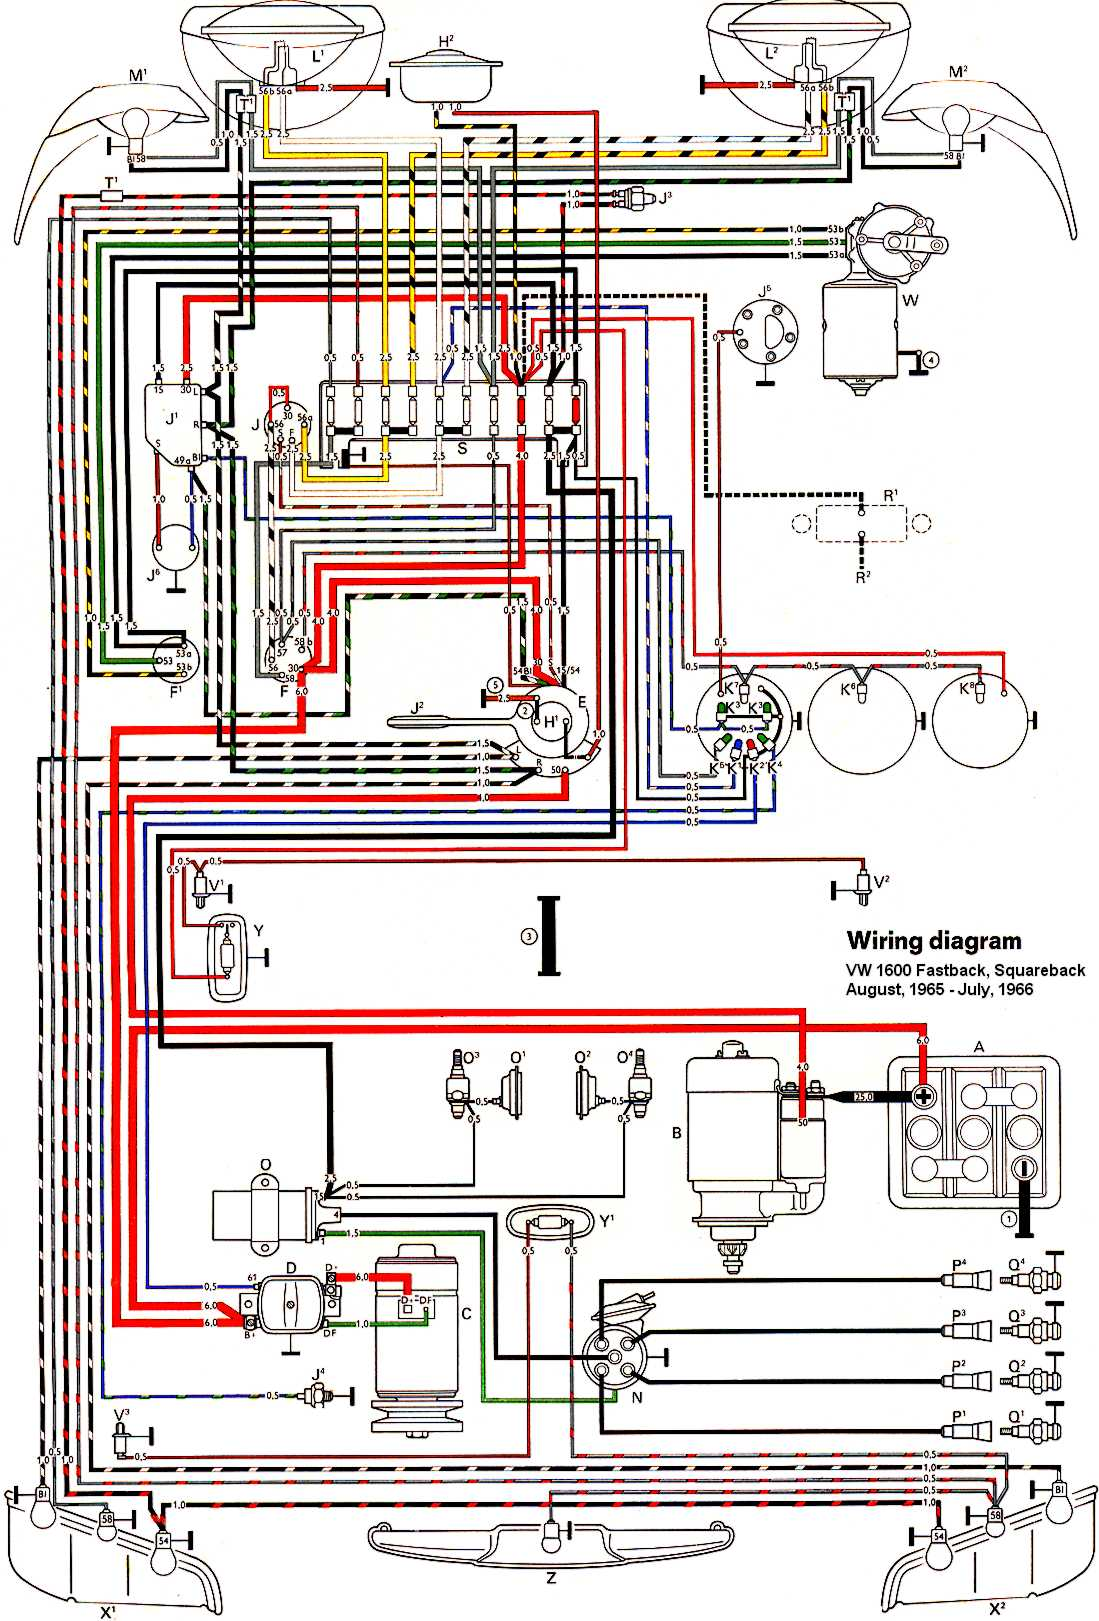 volkswagen 1600 wiring diagram wire center \u2022 Vintage VW Wiring Diagrams vw 1600 wiring diagram online schematic diagram u2022 rh holyoak co vw 1600 engine wiring diagram